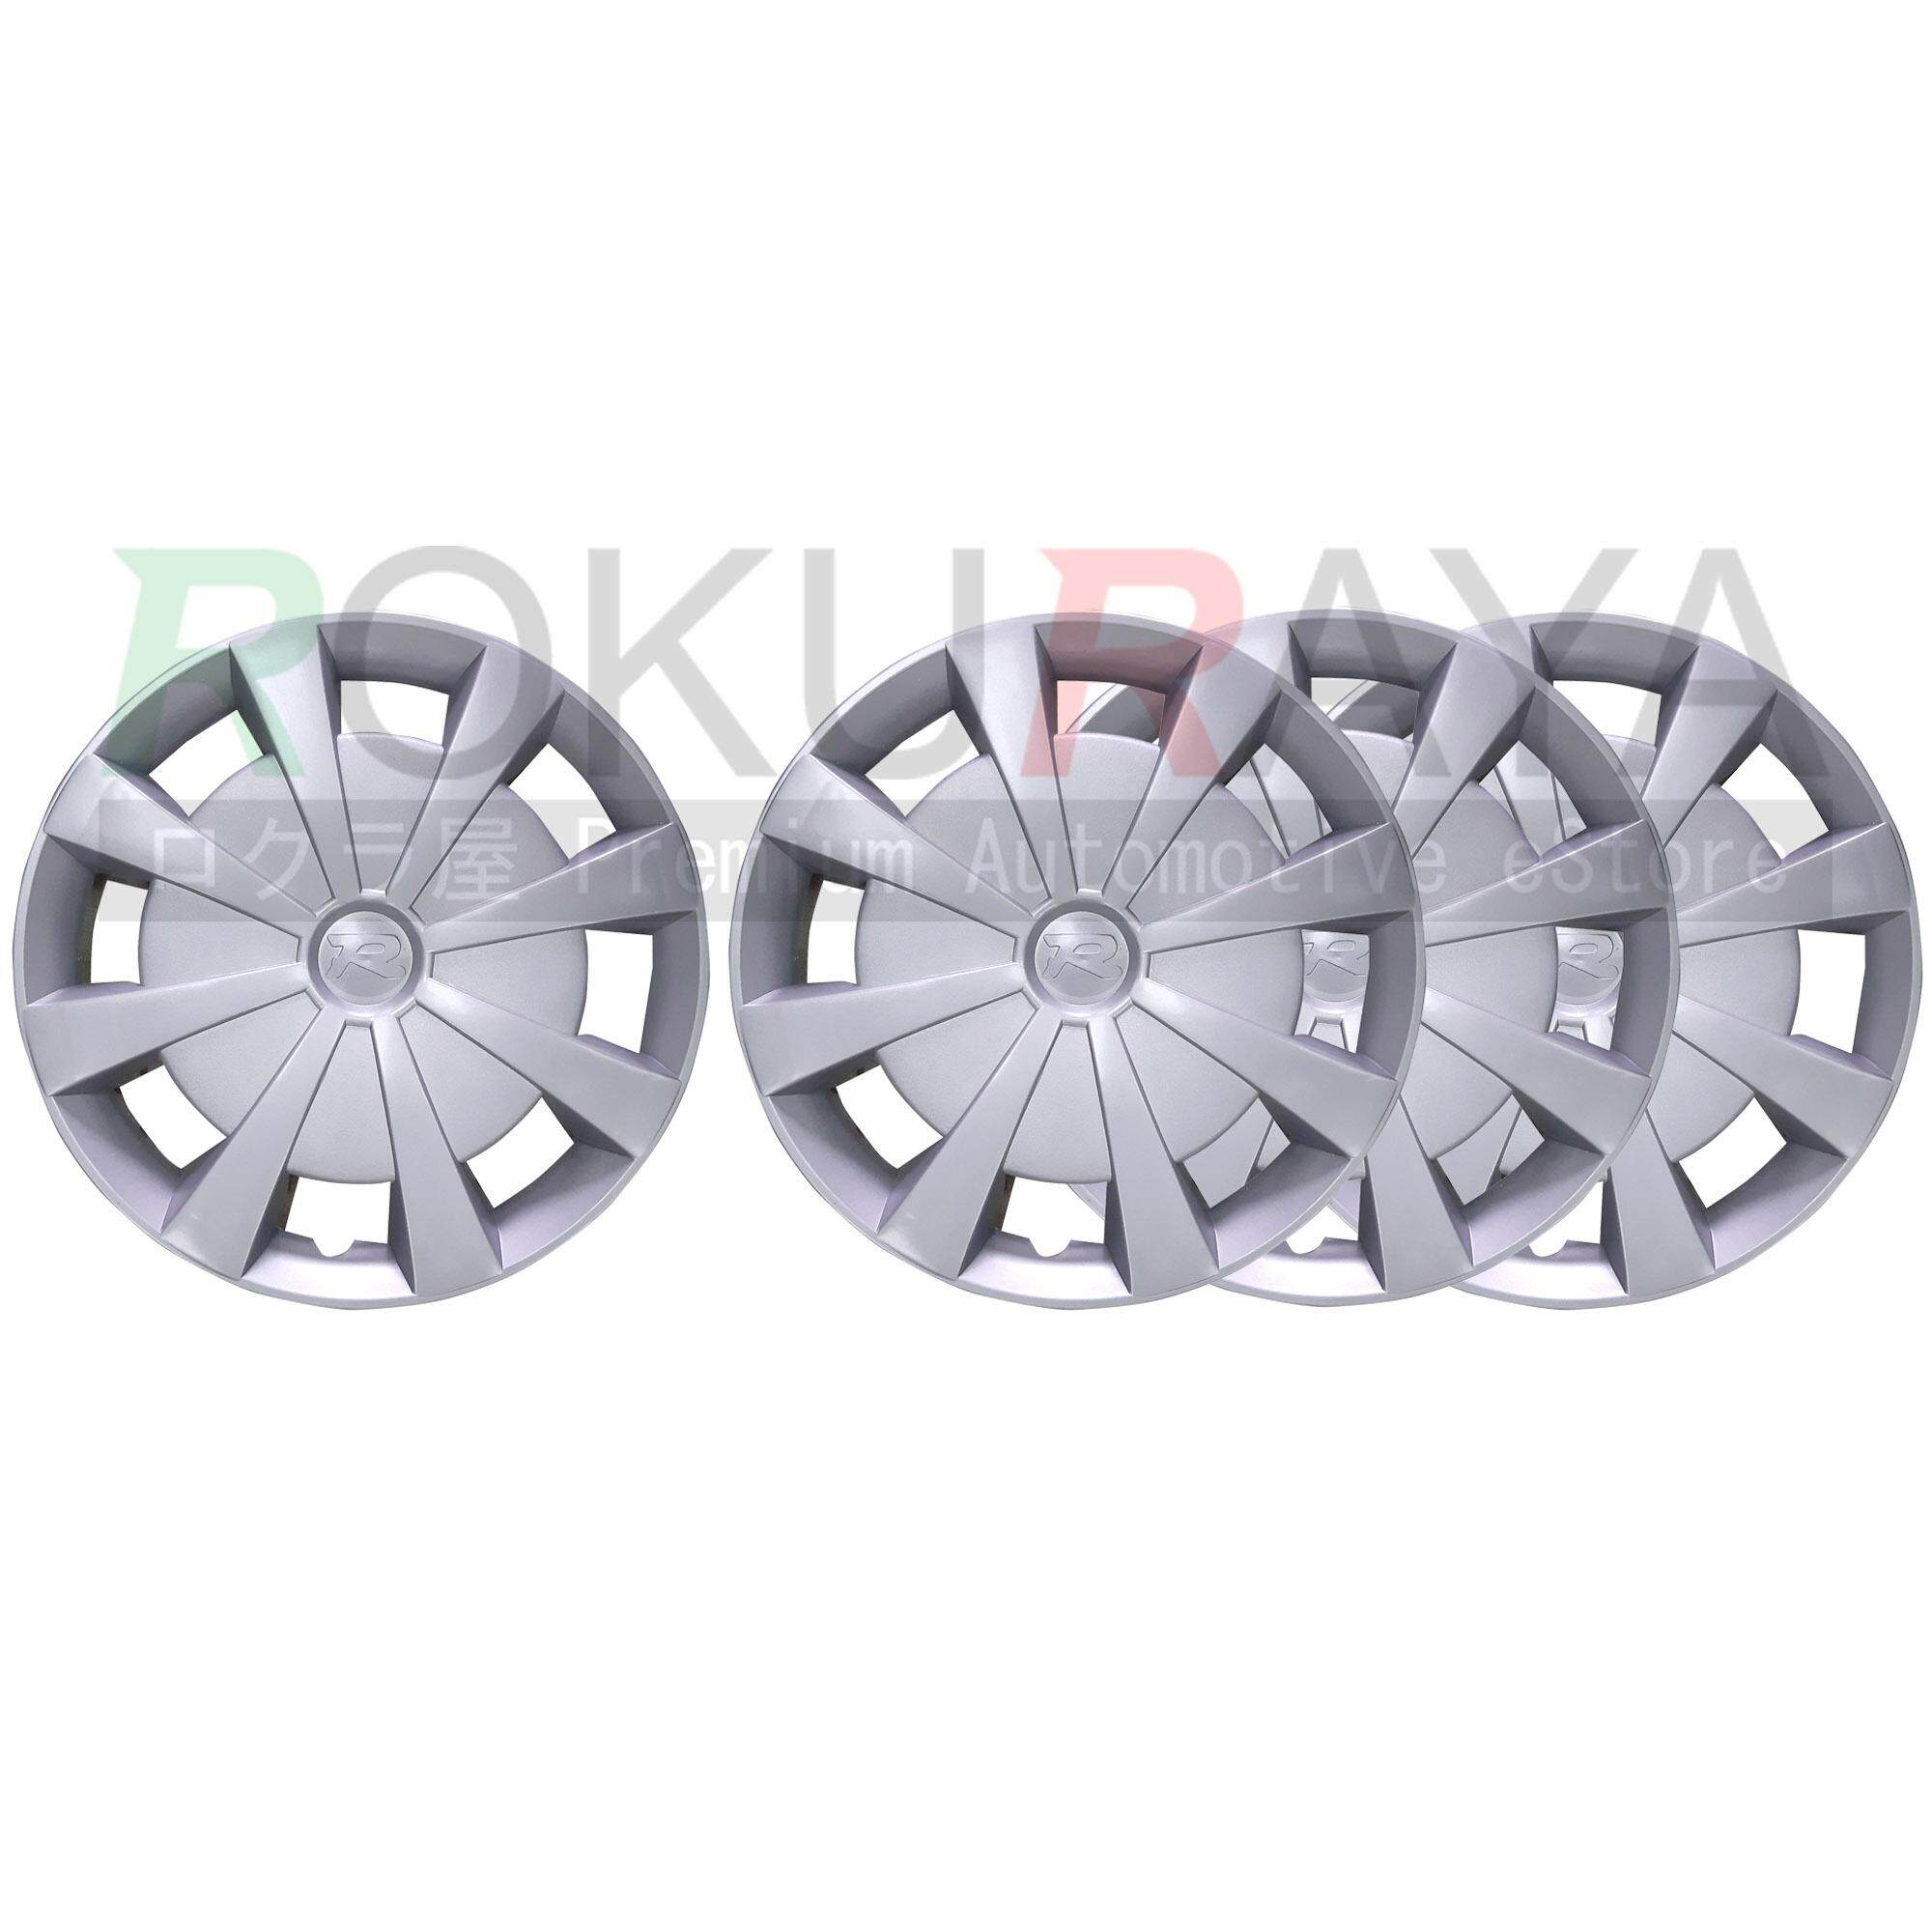 Sport Universal 14 R14 Inch Wheel Cover Type R Look Tire Auto Center Hub Caps Trims For Oem Steel Rim (with Center R Logo) - Complete Set Of 4 Pieces By Automart Rr.